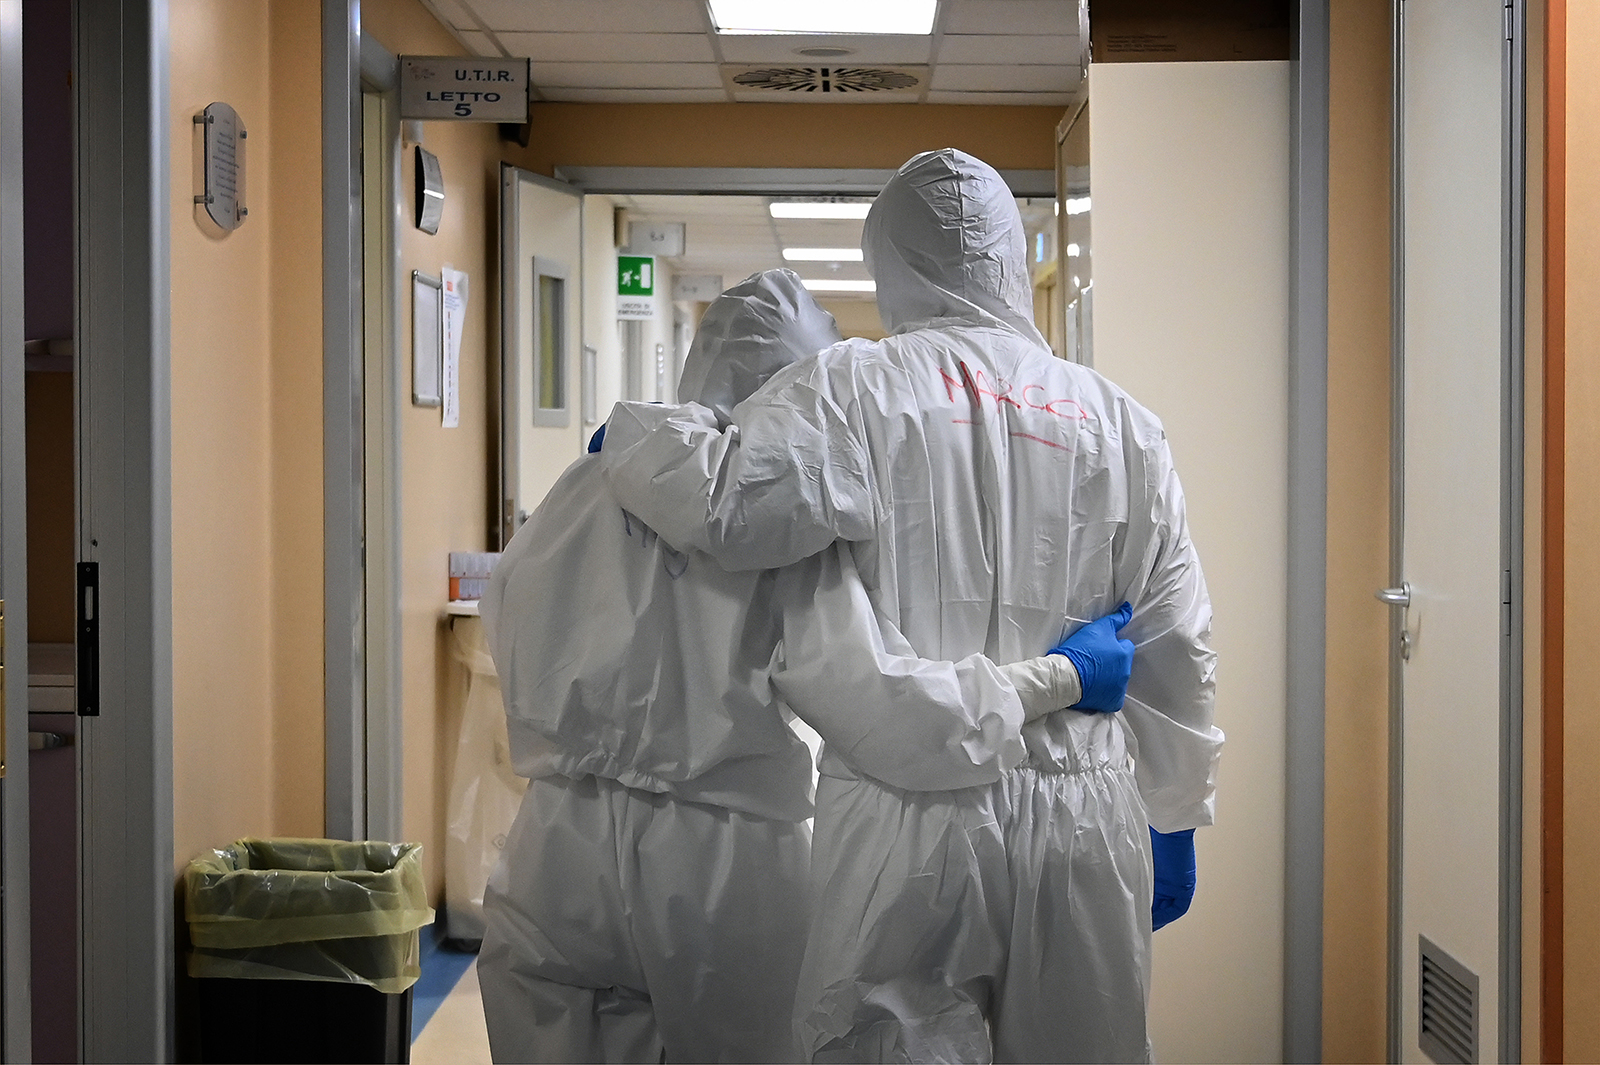 A doctor and nurse embrace at the end of their shift in the intensive care unit treating Covid-19 patients, at the San Filippo Neri hospital in Rome, on April 20.